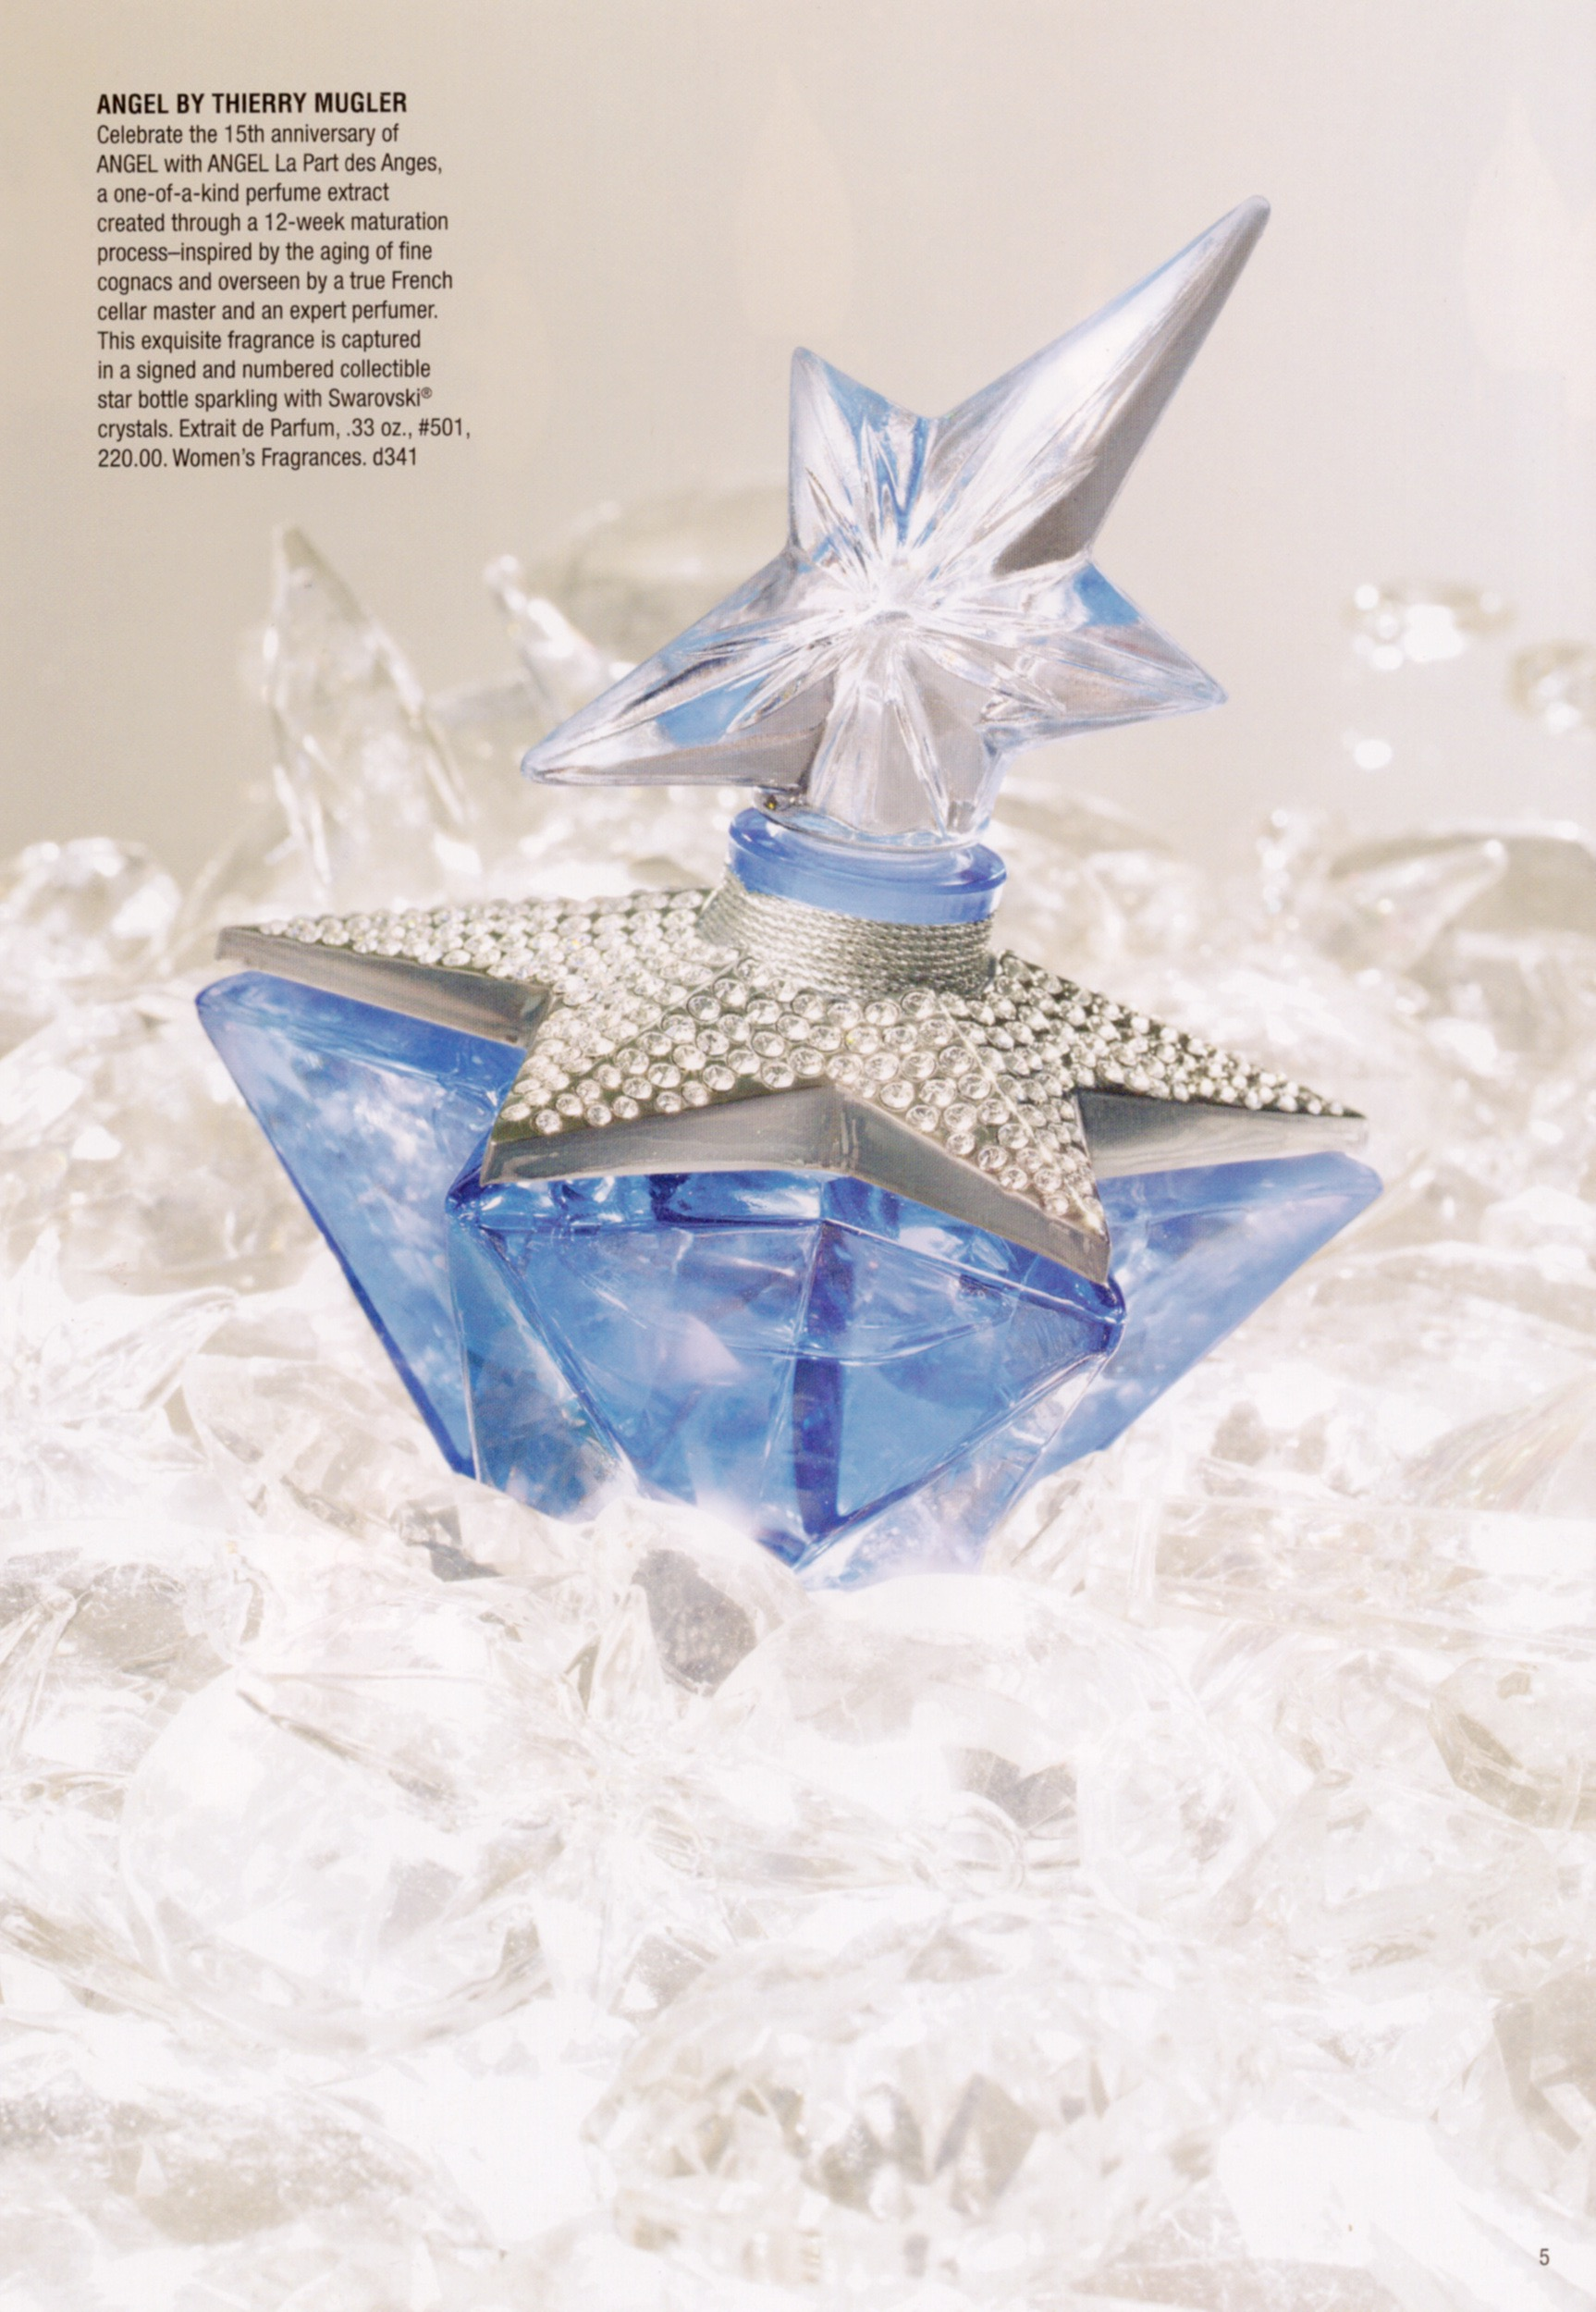 Thierry Mugler Angel Perfume La Part des Anges Angels Star (Etoile), 2007. Swarovski Crystals. Bottle Collecting Saks Fifth Avenue Catalog Price